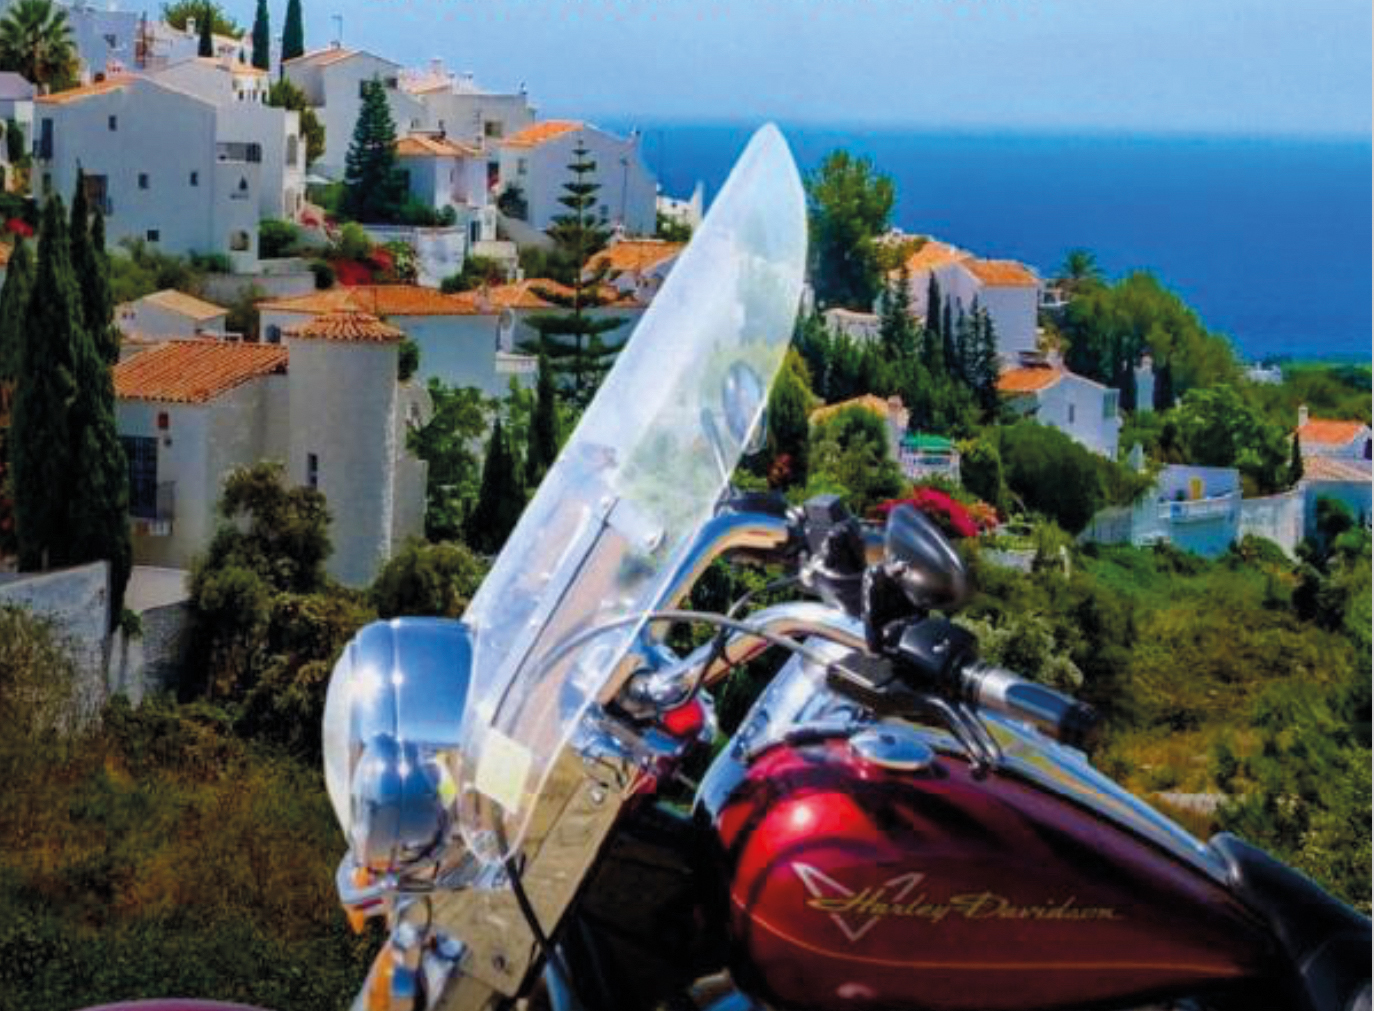 THE+FURTHEST+POINTS+%E2%80%93+MOTORCYCLE+TRAVELS+THROUGH+SPAIN+AND+PORTUGAL